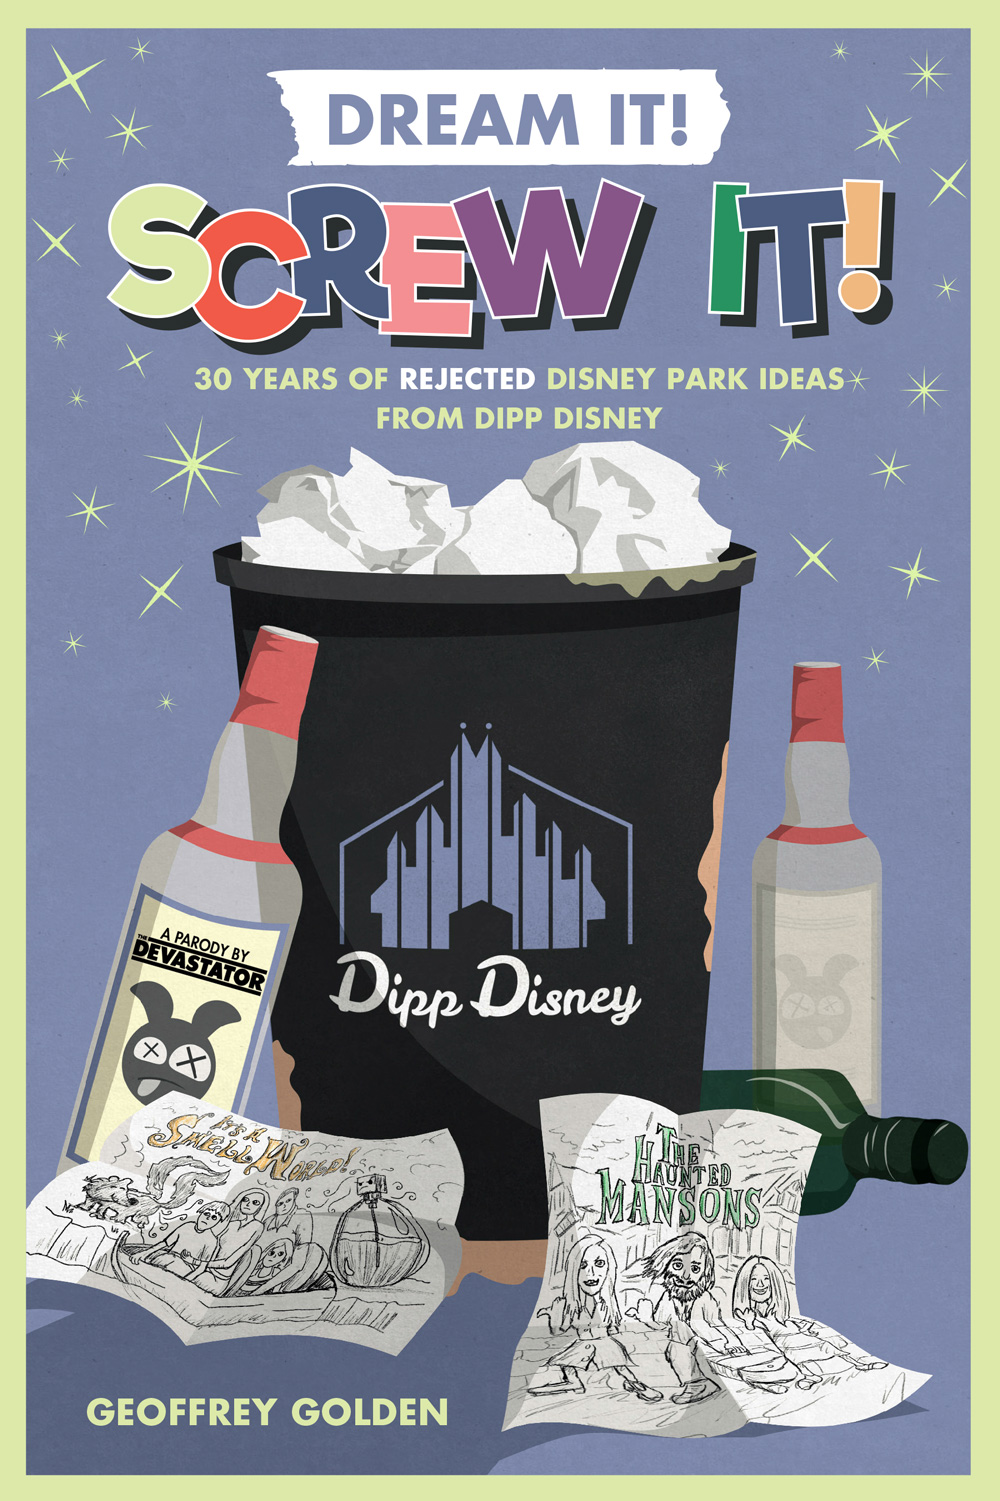 DREAM IT! SCREW IT! Coming Out Soon